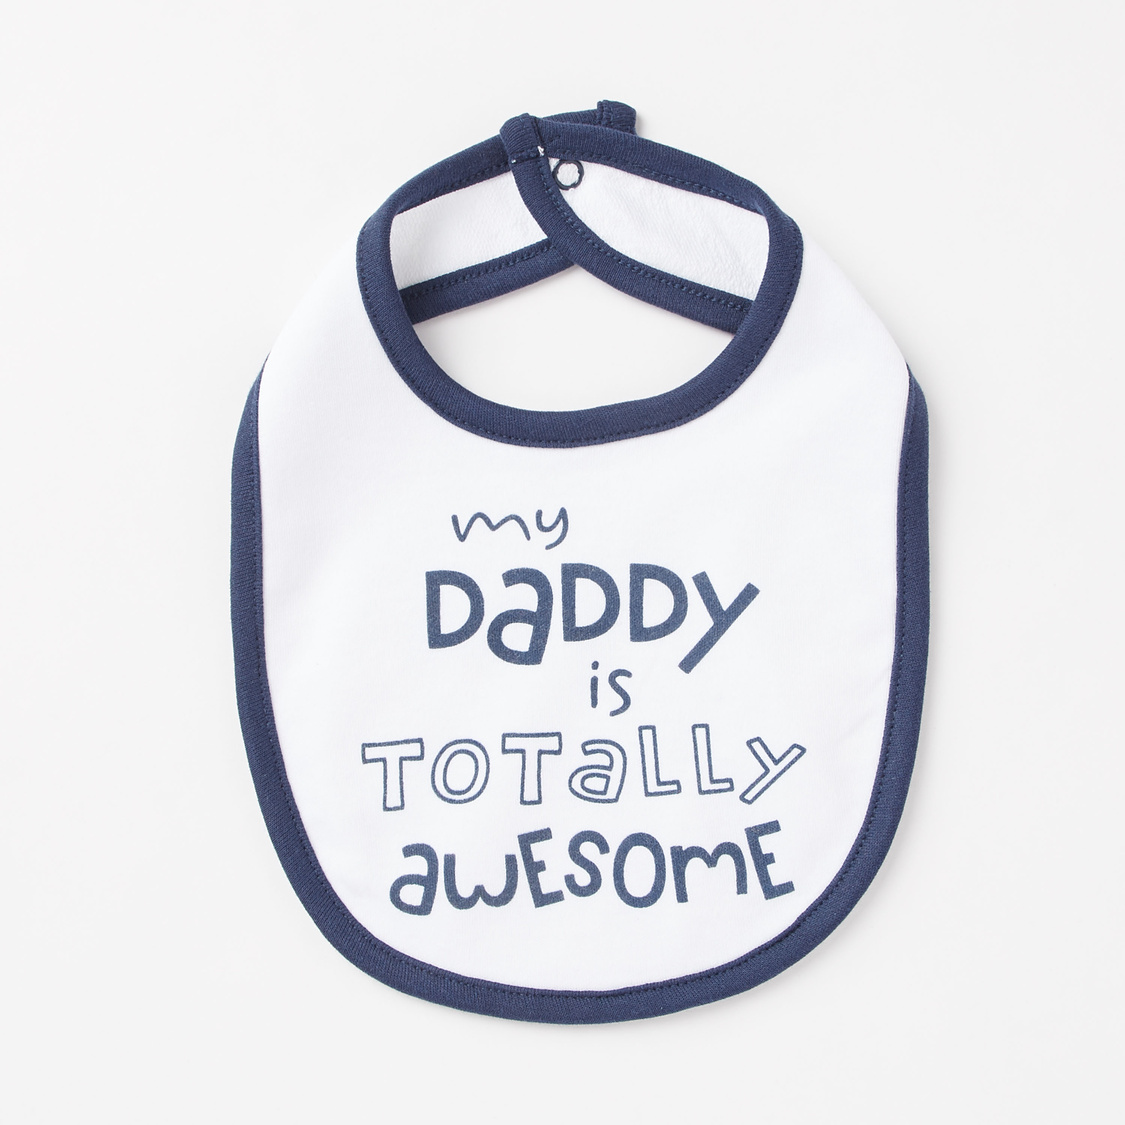 Set of 3 - Printed GOTS Organic Cotton Bibs with Snap Button Closure